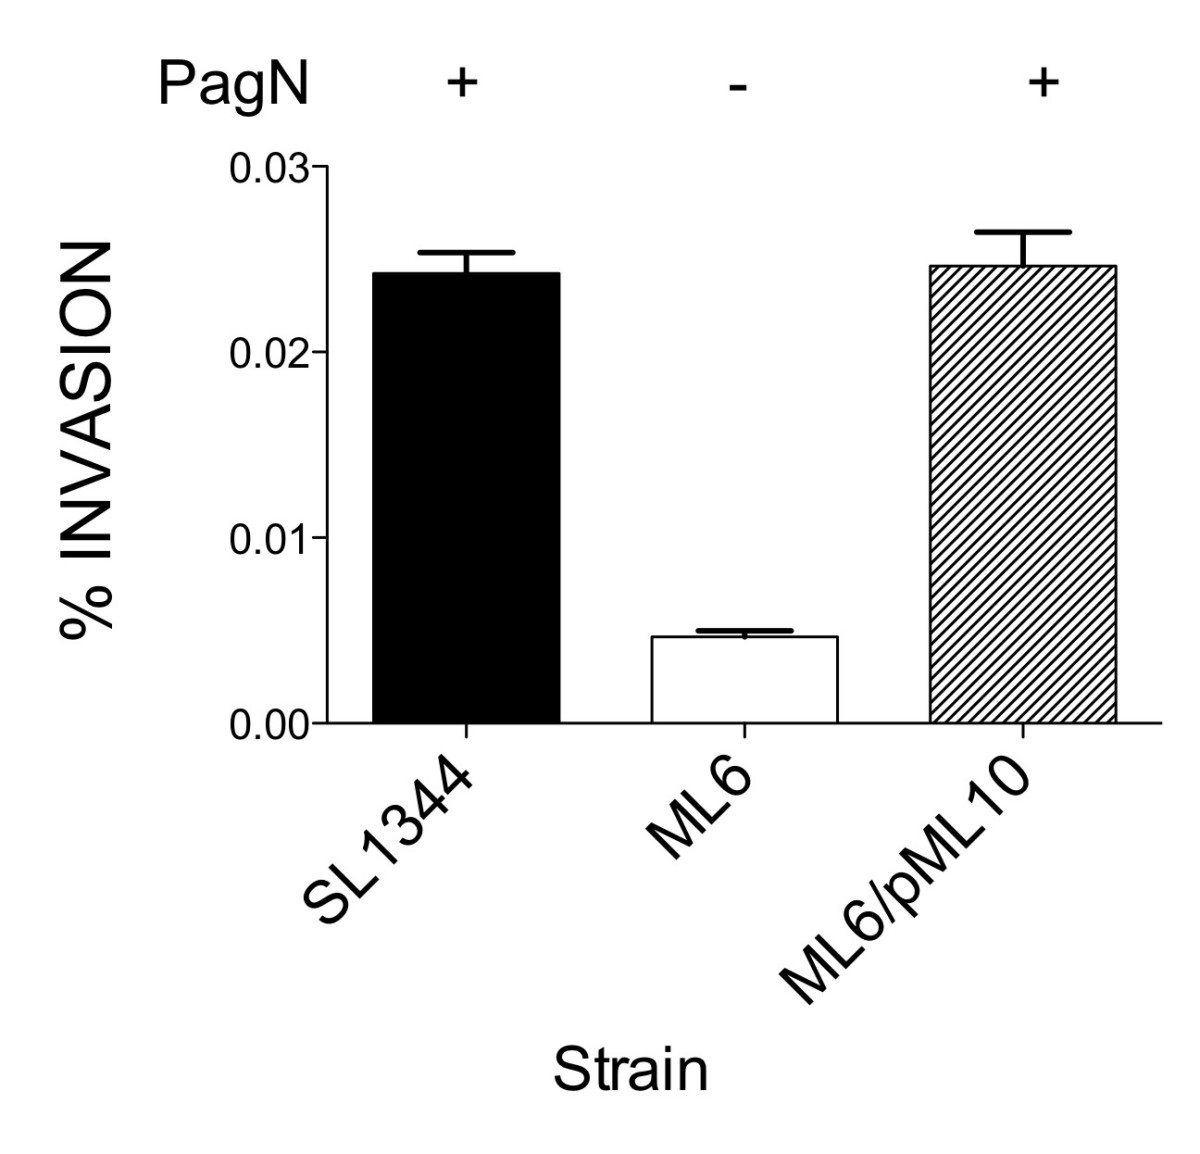 https://static-content.springer.com/image/art%3A10.1186%2F1471-2180-8-142/MediaObjects/12866_2008_Article_575_Fig7_HTML.jpg